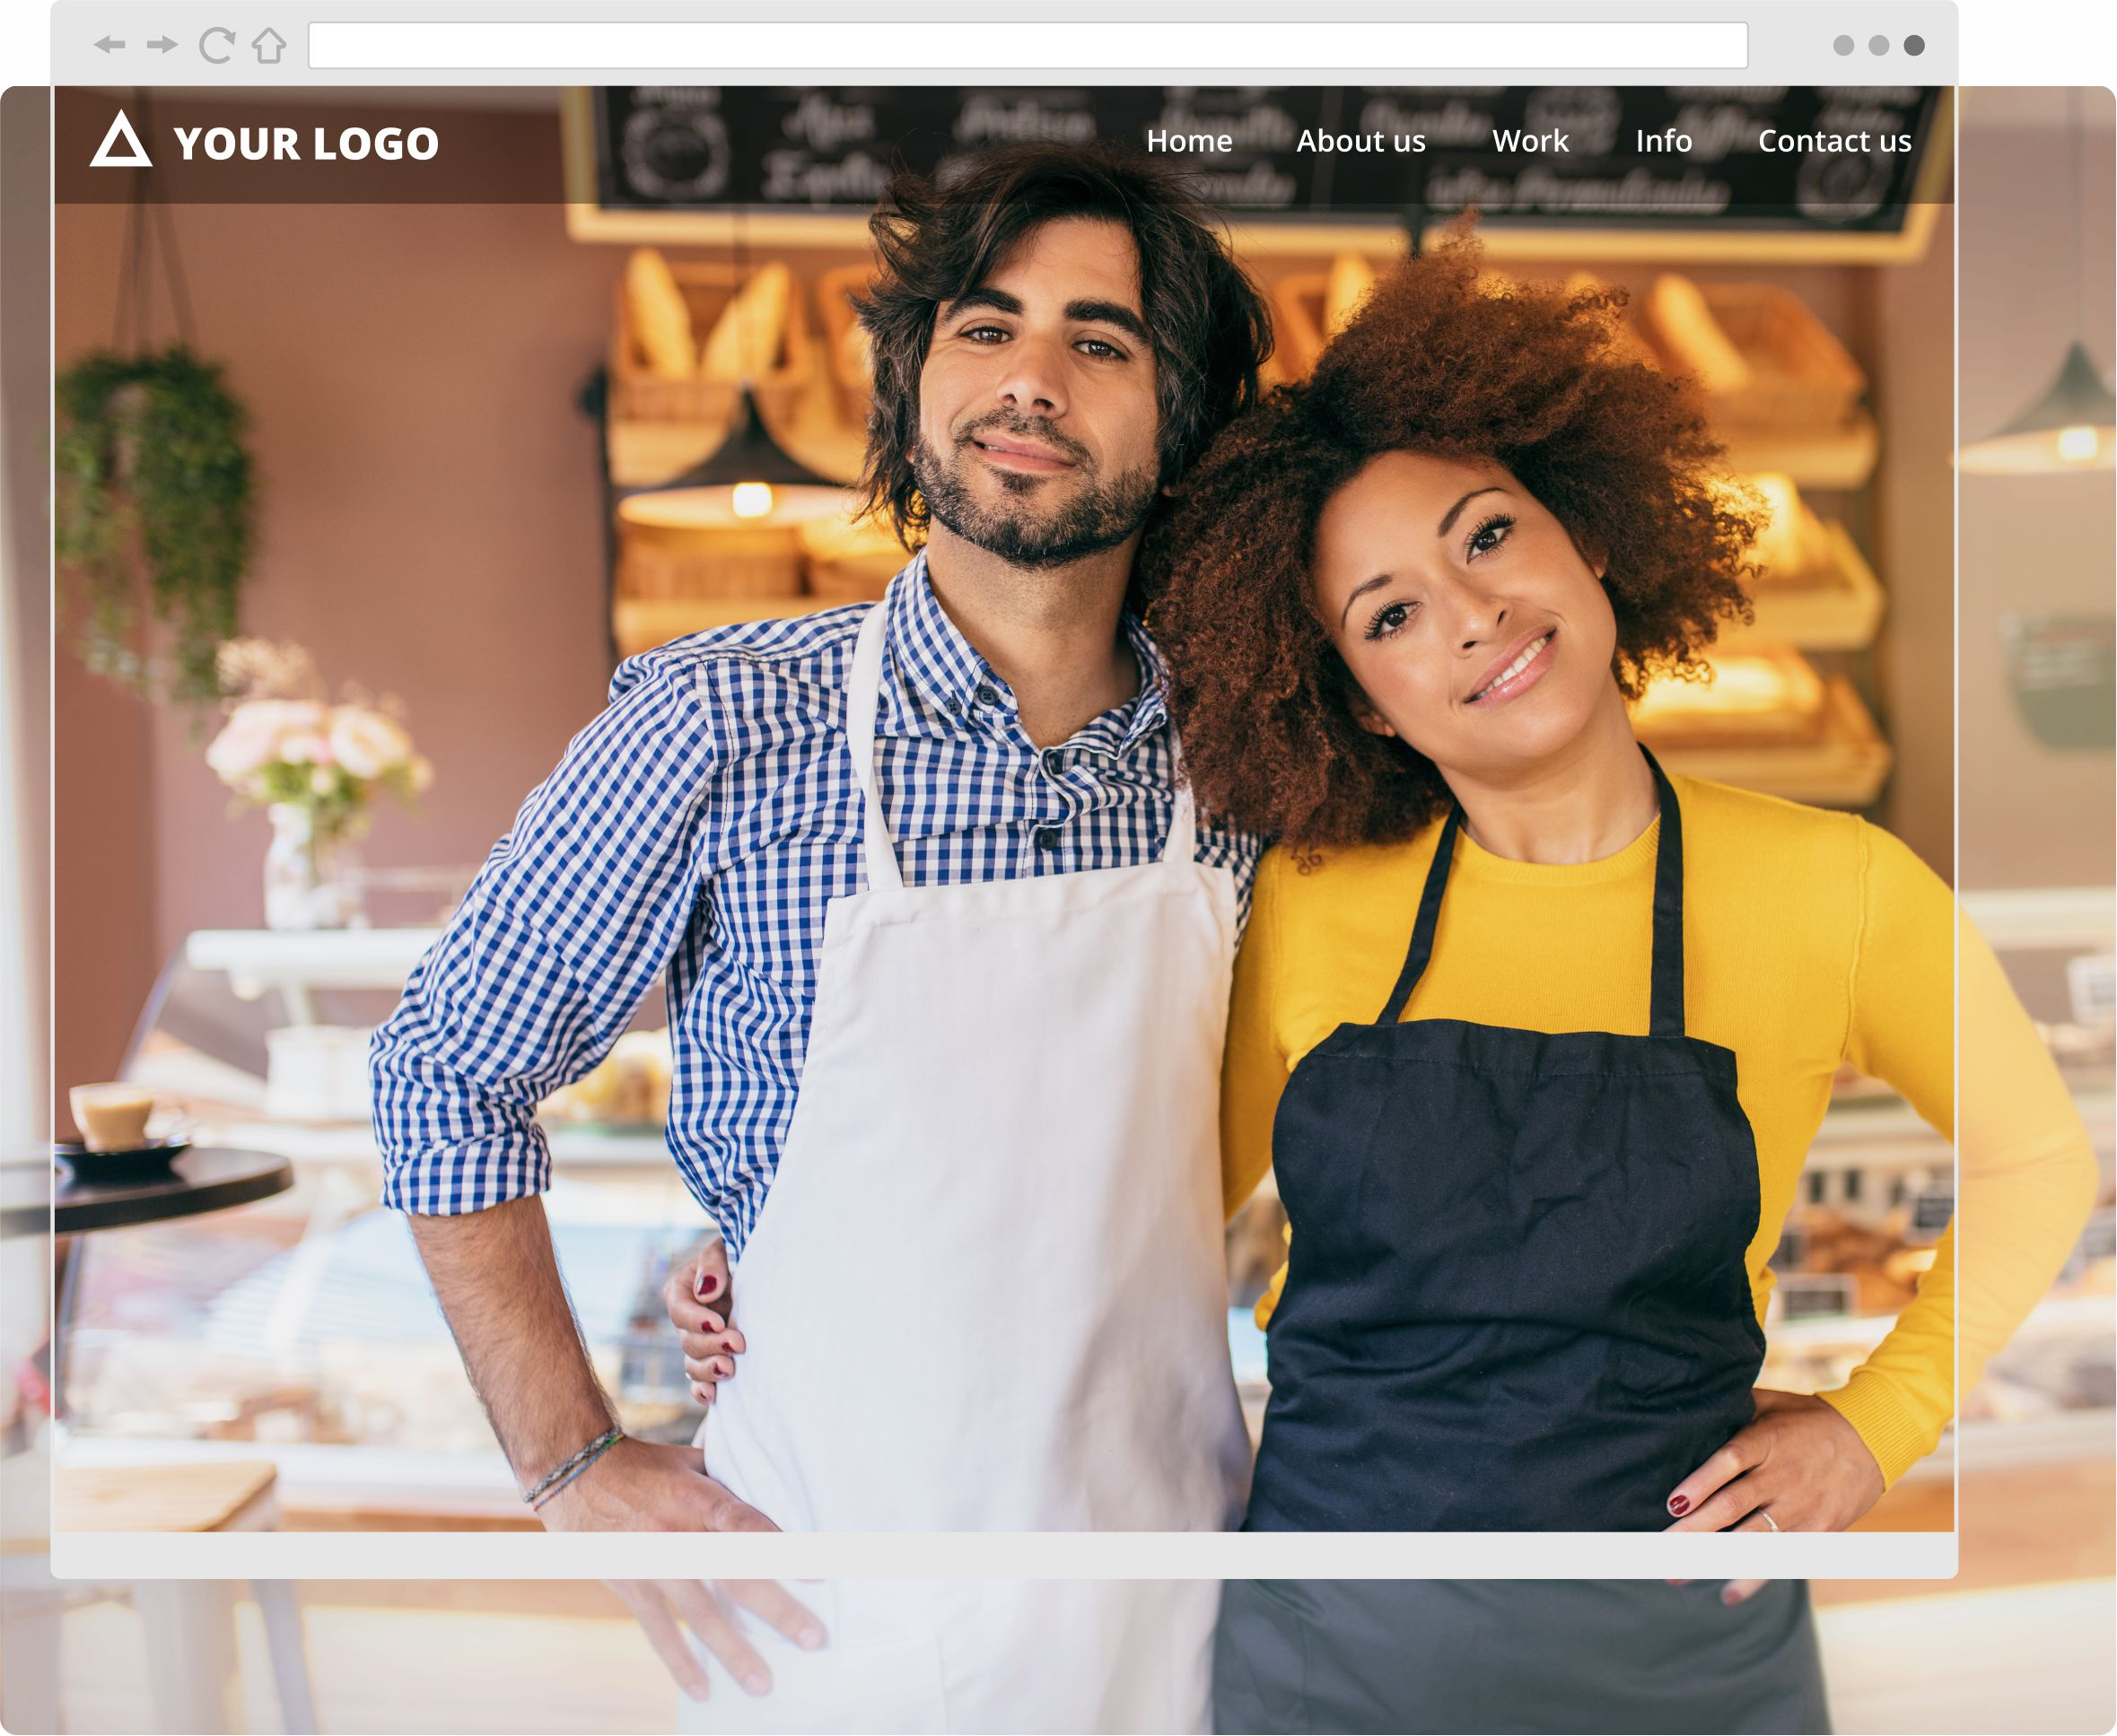 Website Design for Small Business Owners